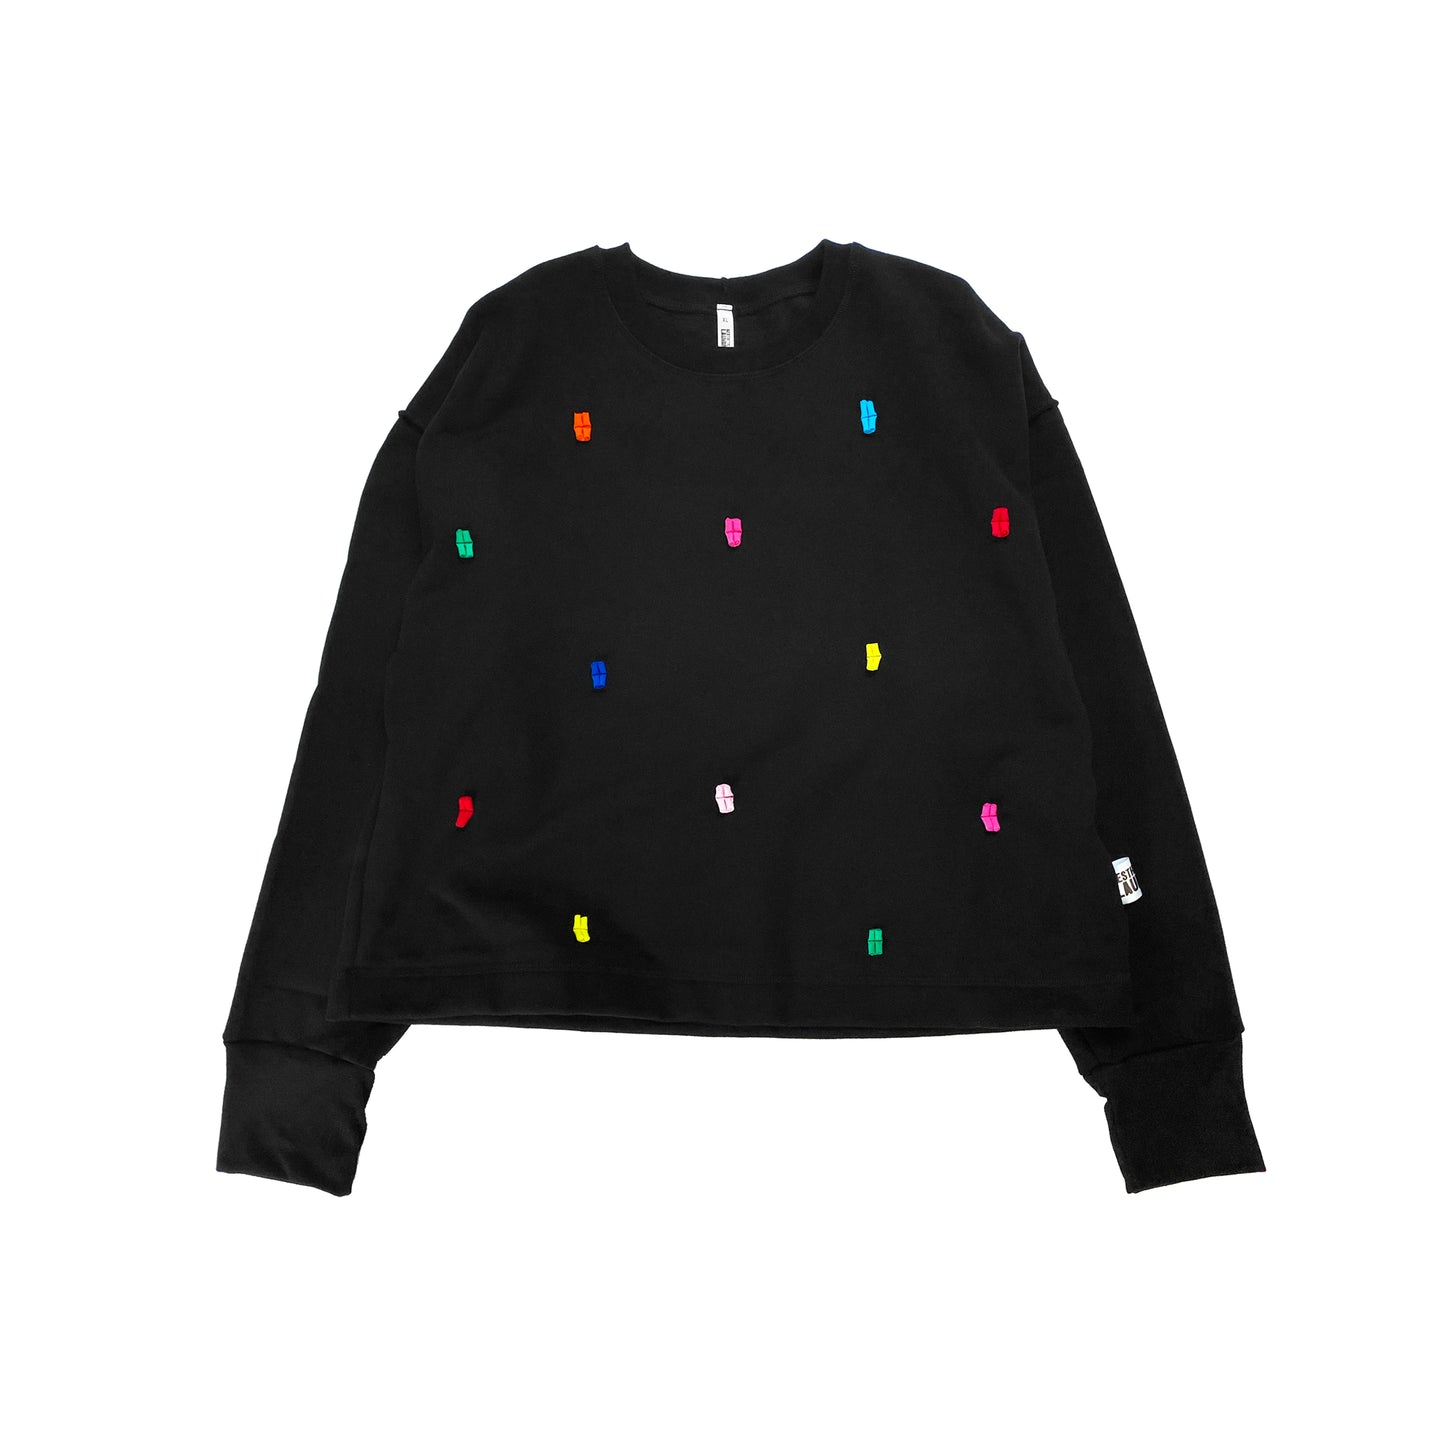 Confetti Jumper - Black